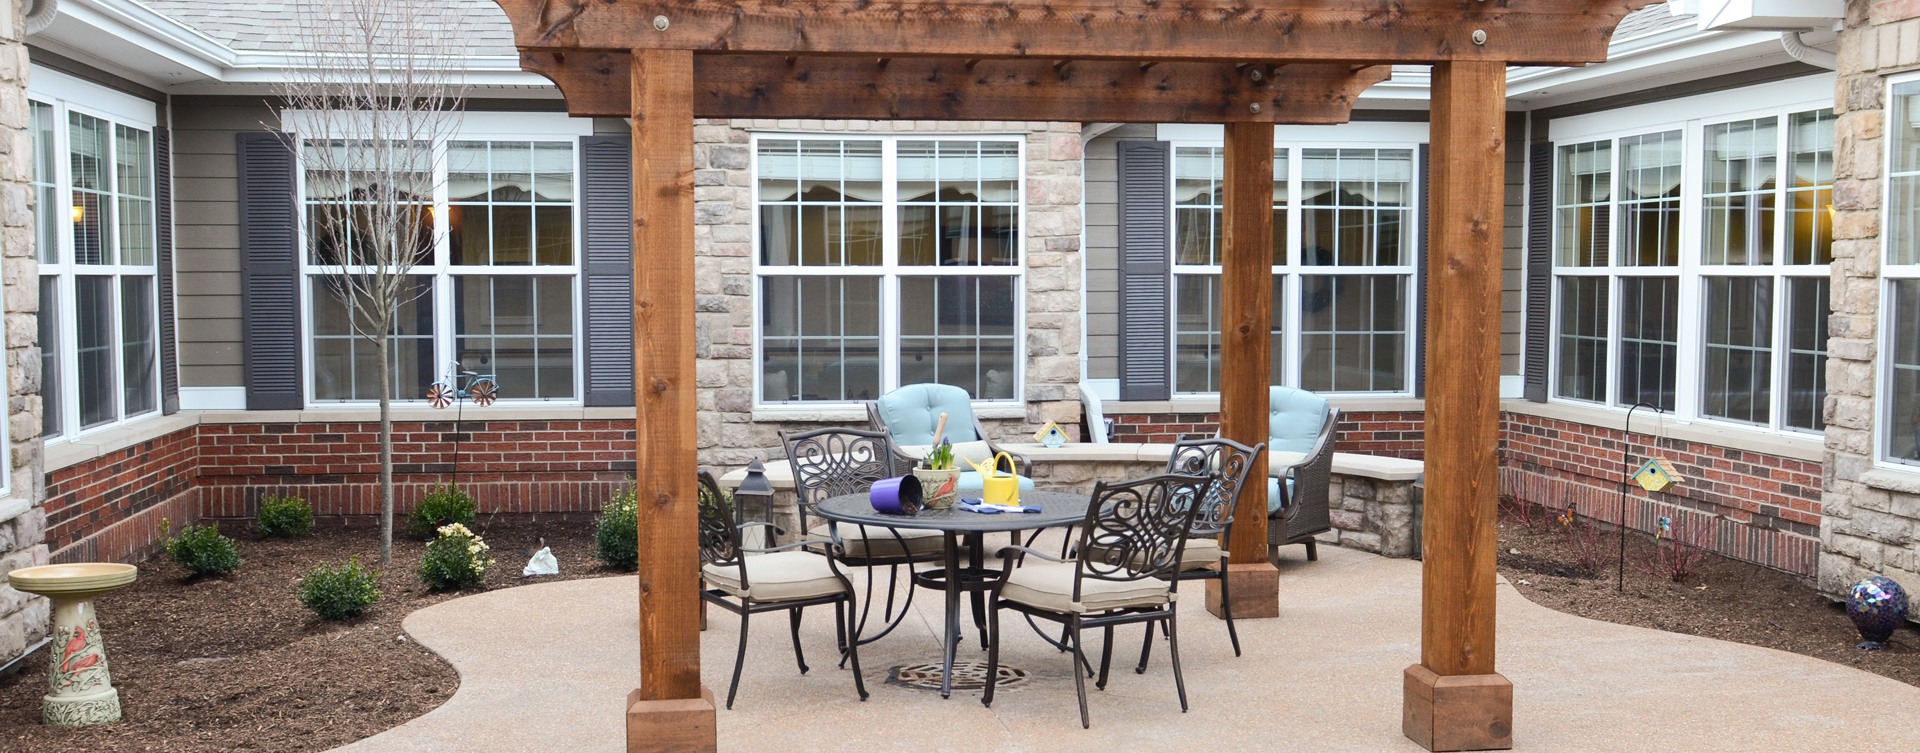 Residents with dementia can enjoy a traveling path, relaxed seating and raised garden beds in the courtyard at Bickford of Aurora